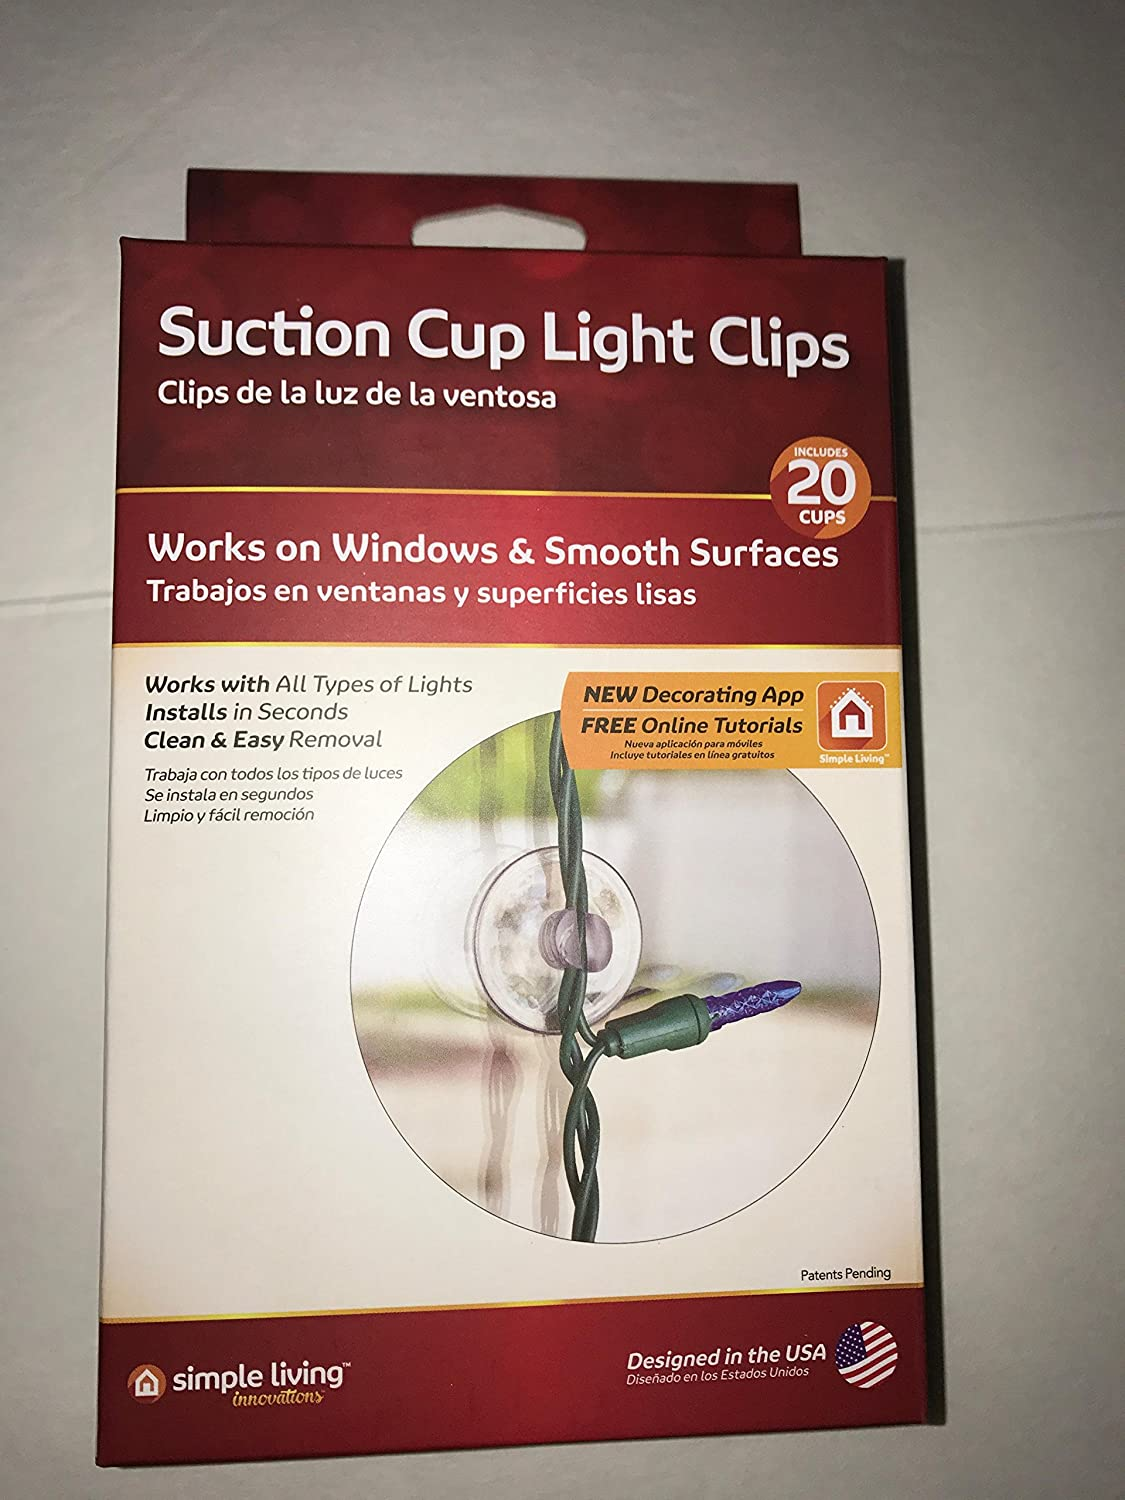 Simple living Suction Cup Light Clips. Fasteners, hook,